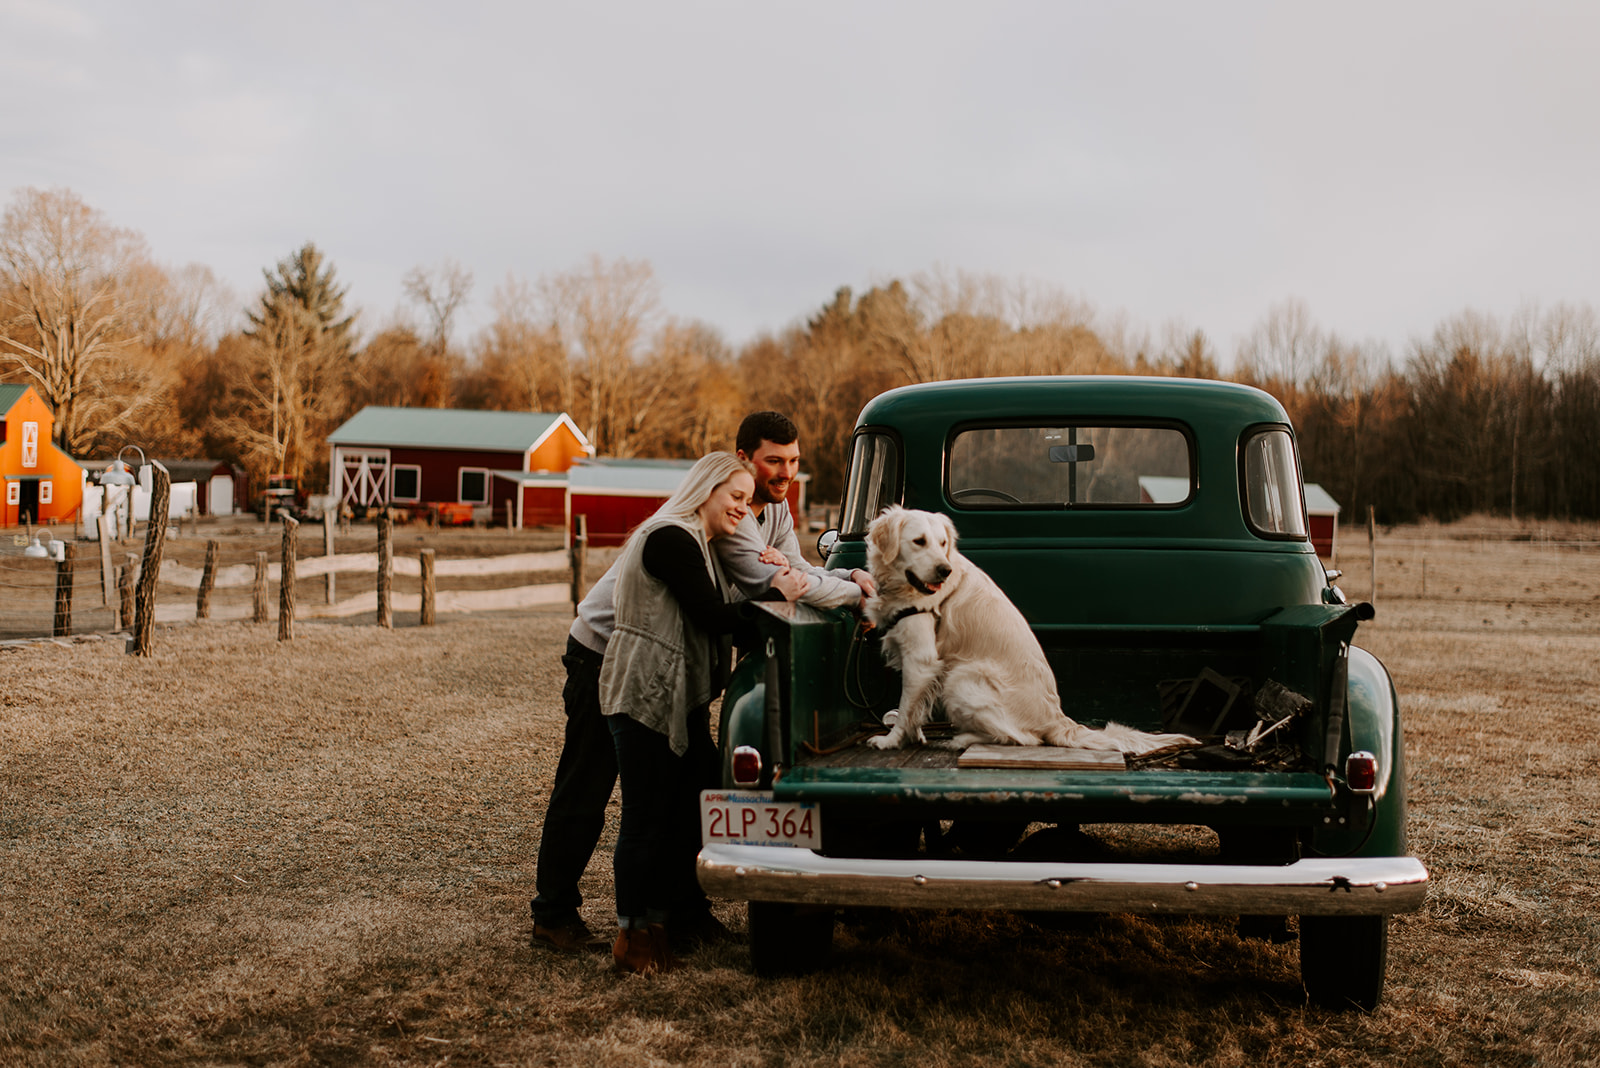 Engagement Session - Spend an afternoon on the farm with your photographer and take engagement photos with your loved one.Branch & Brenton Photography